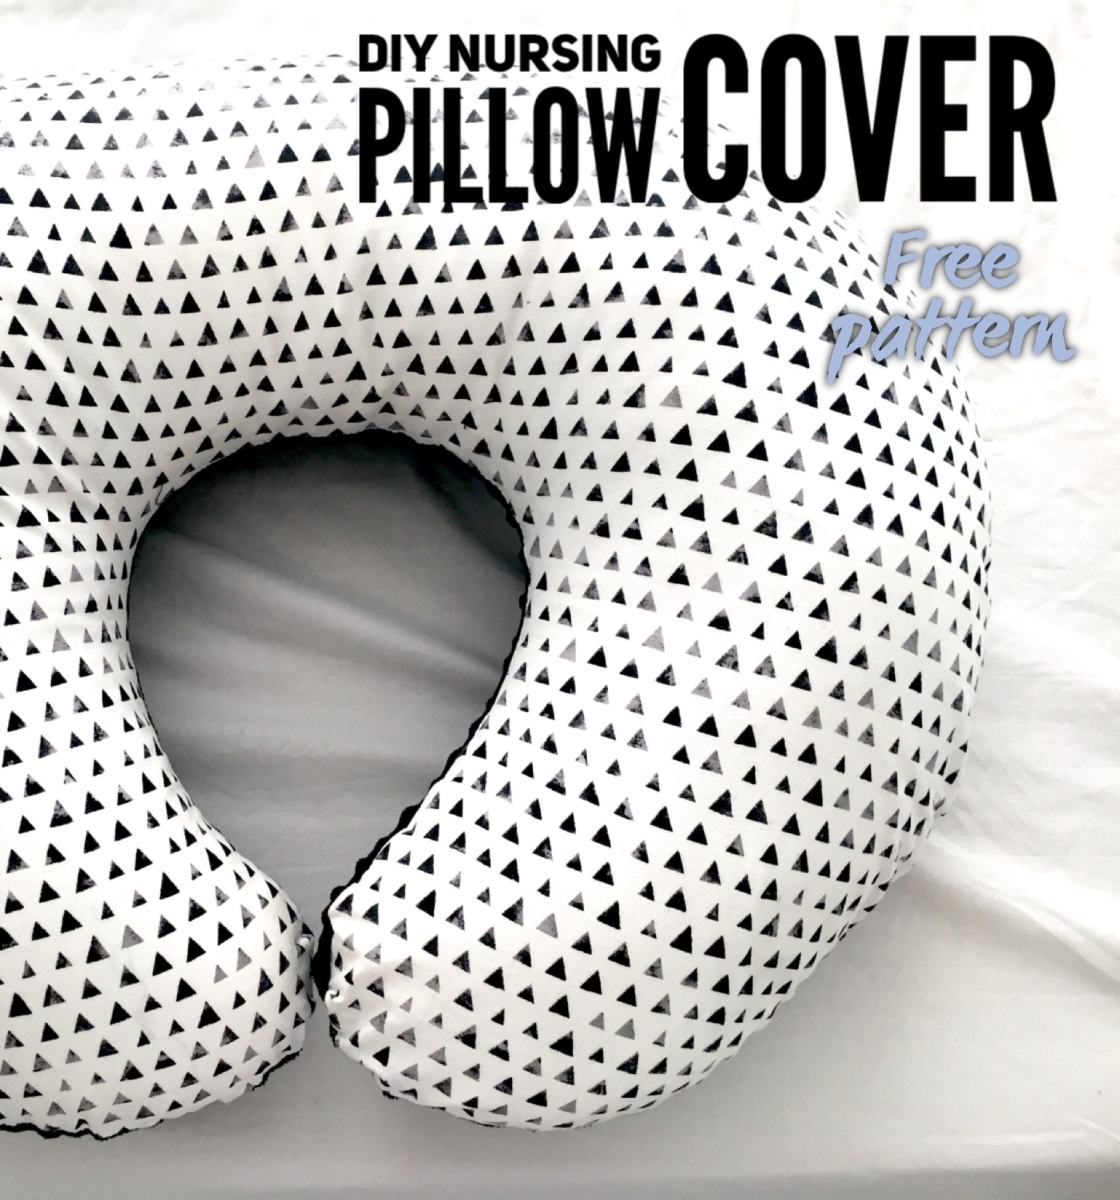 DIY Nursing Pillow Cover